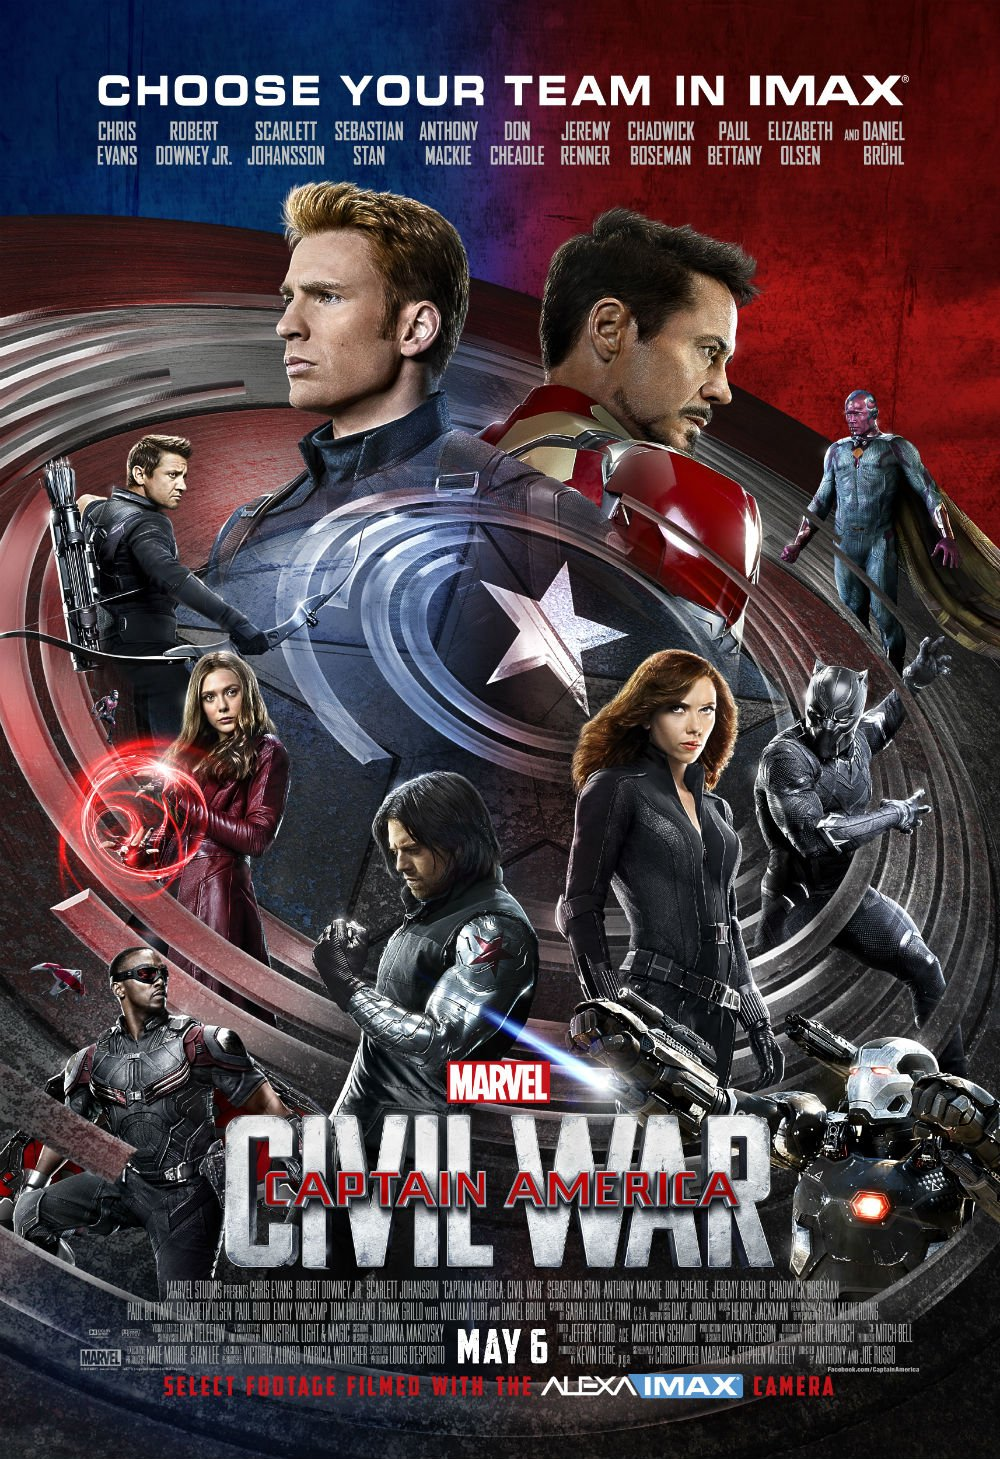 Captain America: Civil War IMAX Poster Finds Earth's Mightiest Heroes Divided